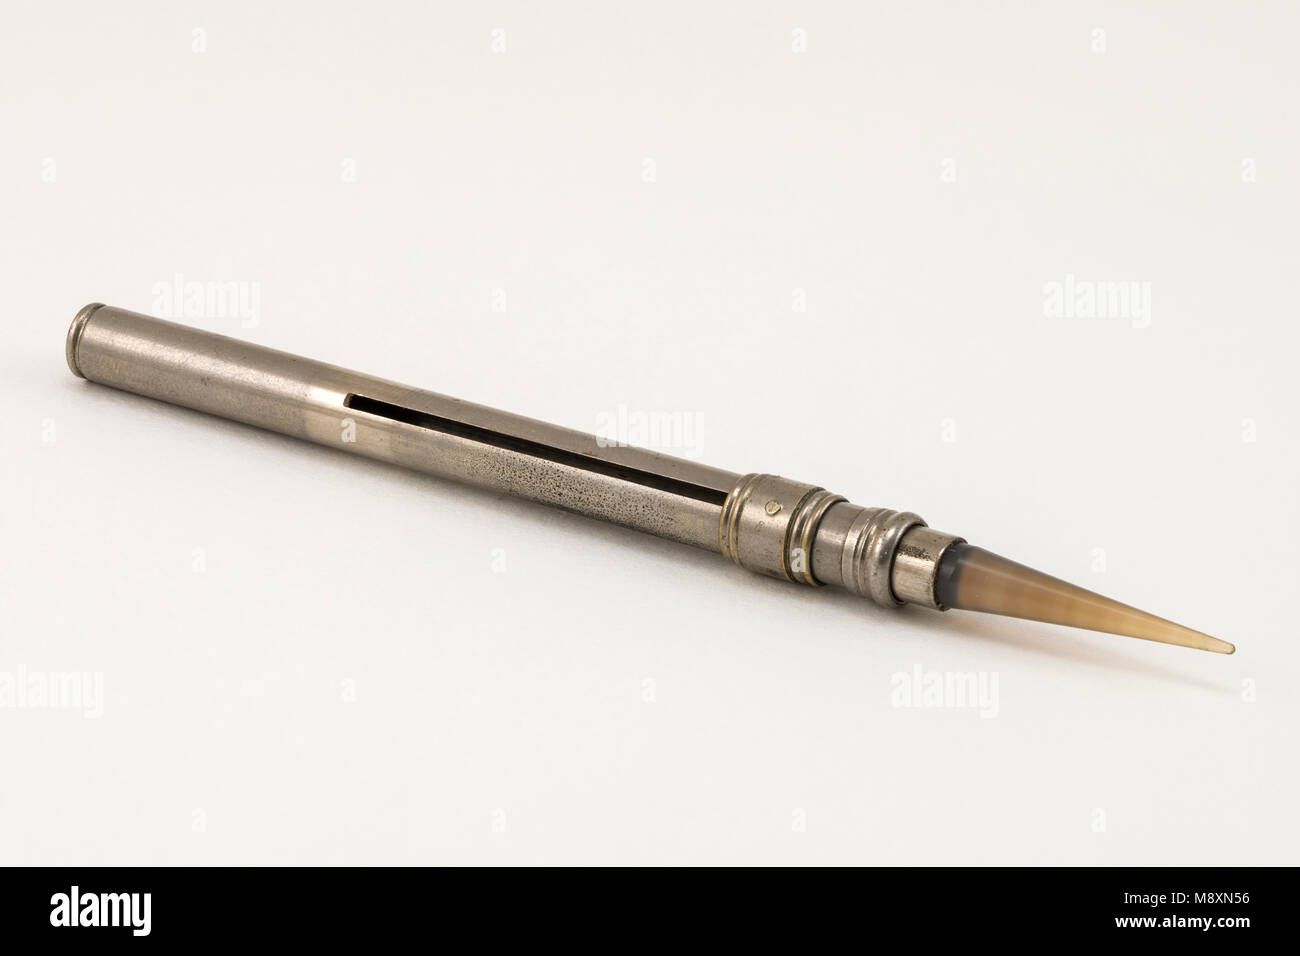 An antique gold leaf burnishing tool with a retractable agate tip. - Stock Image